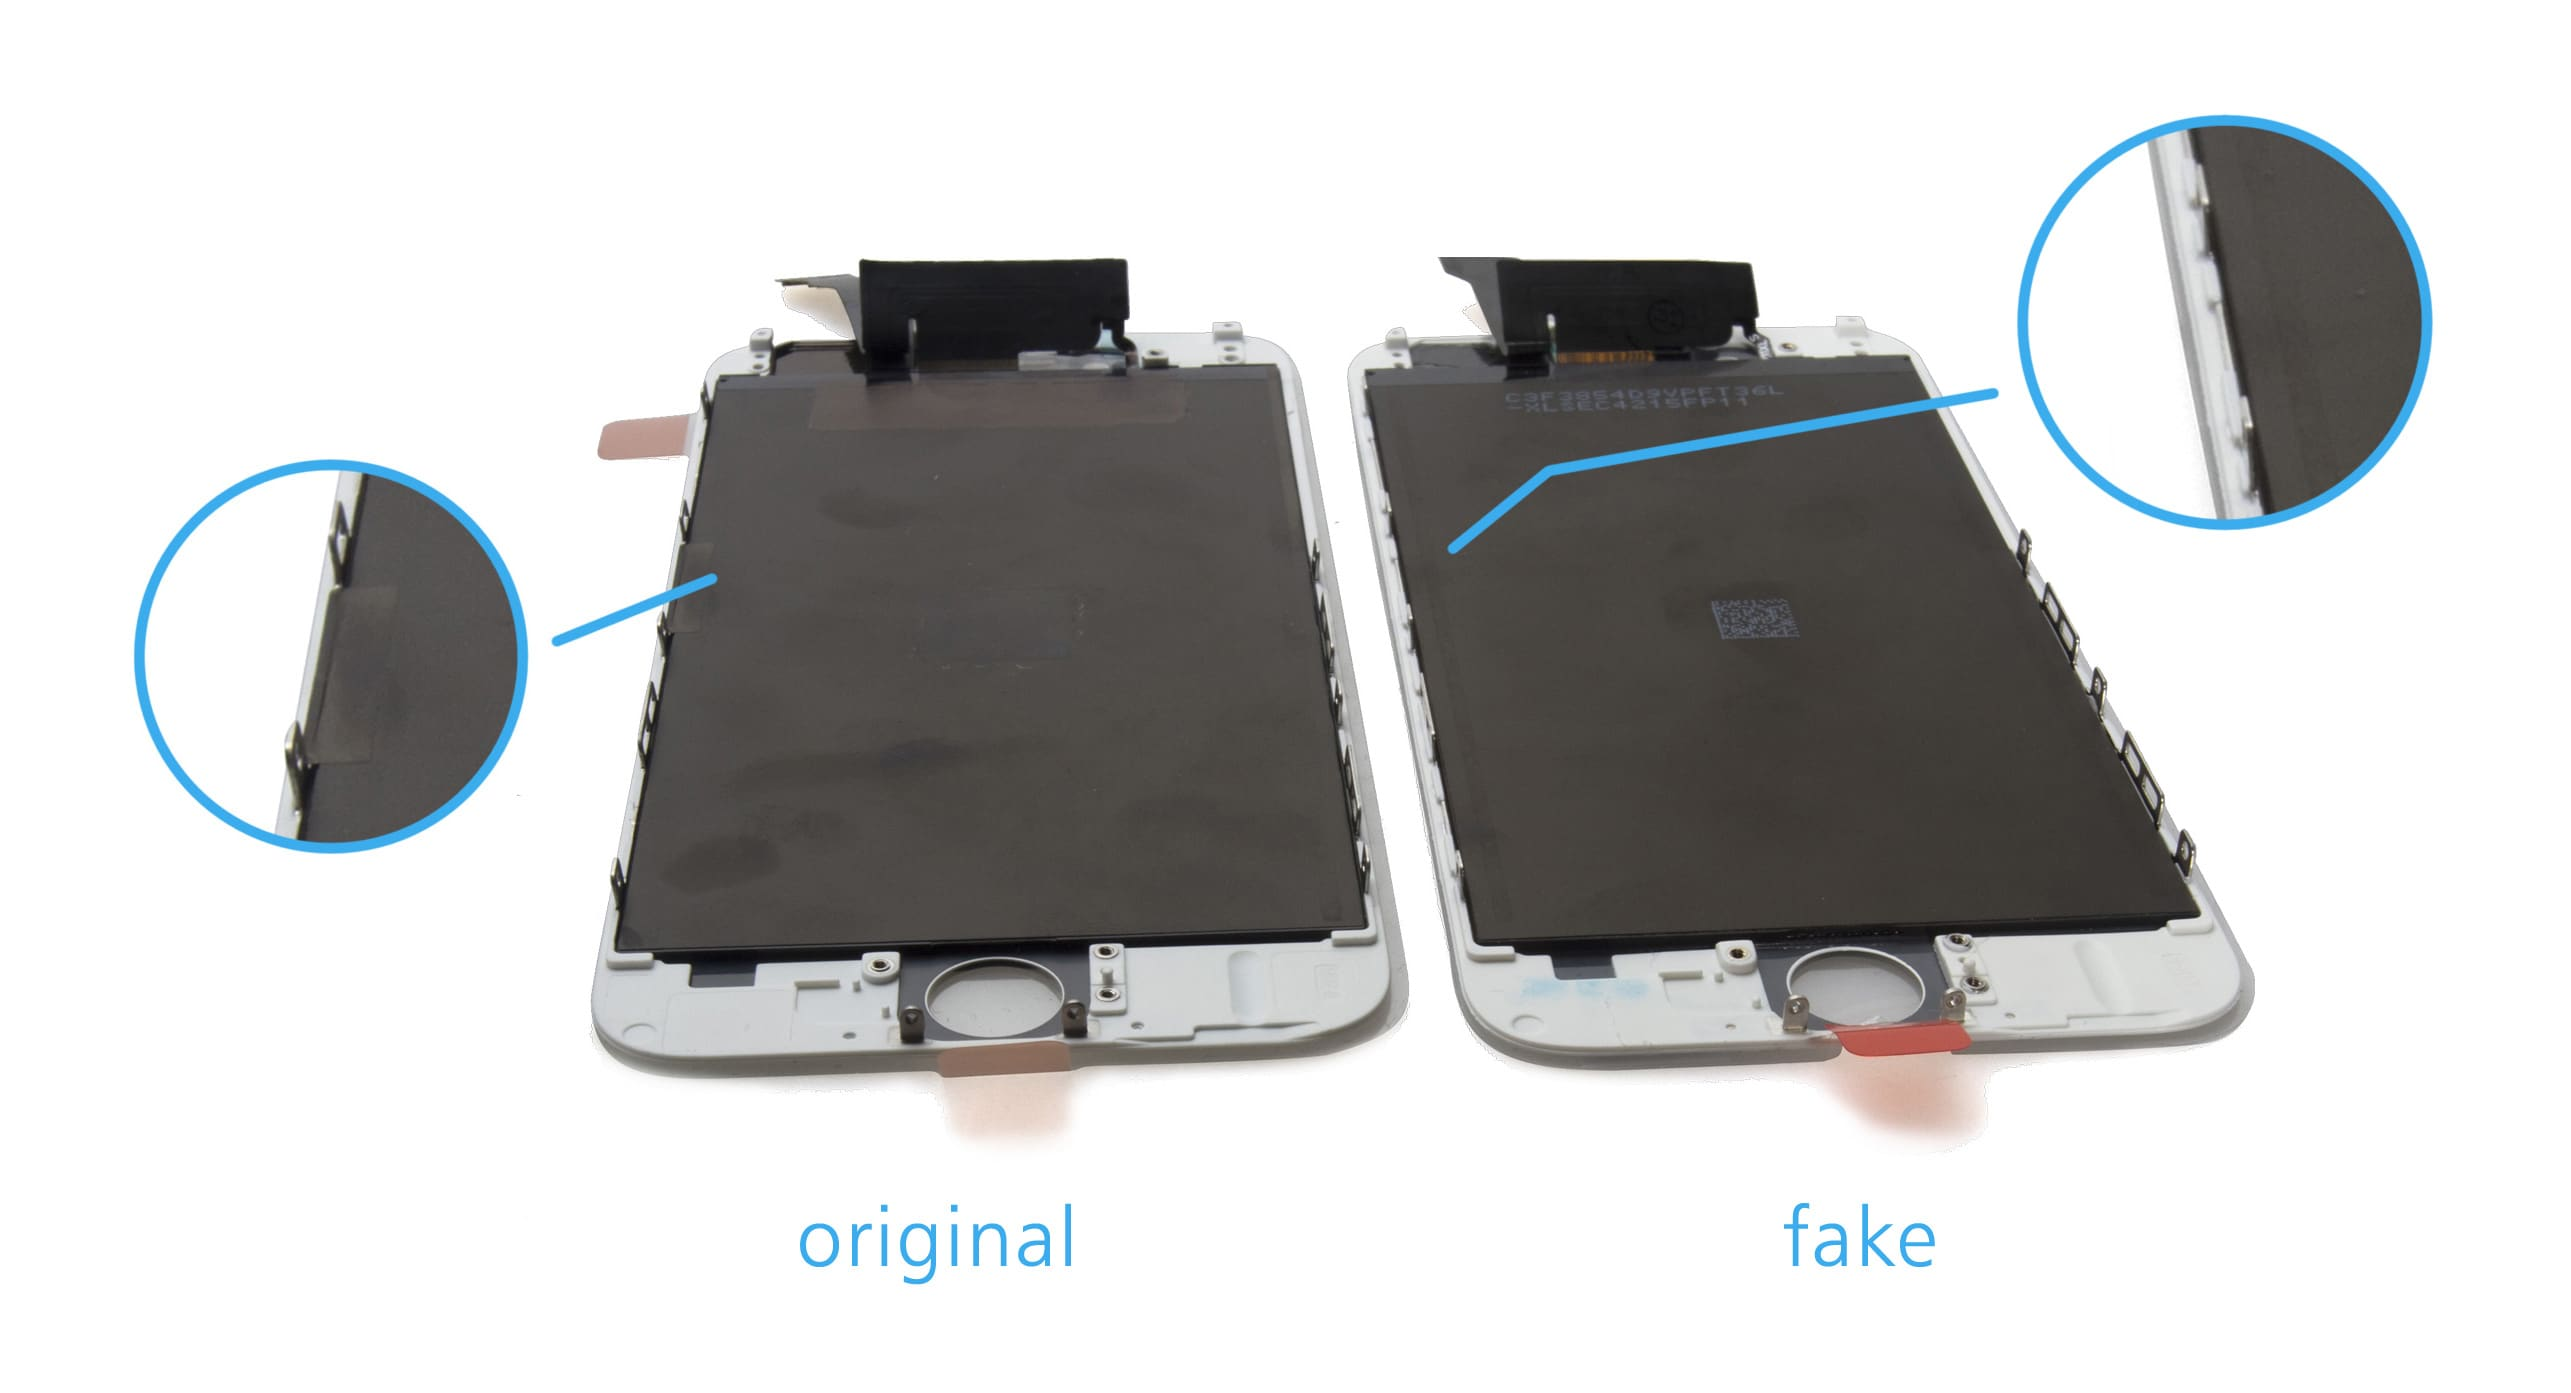 iPhone repair - Original vs fake screens